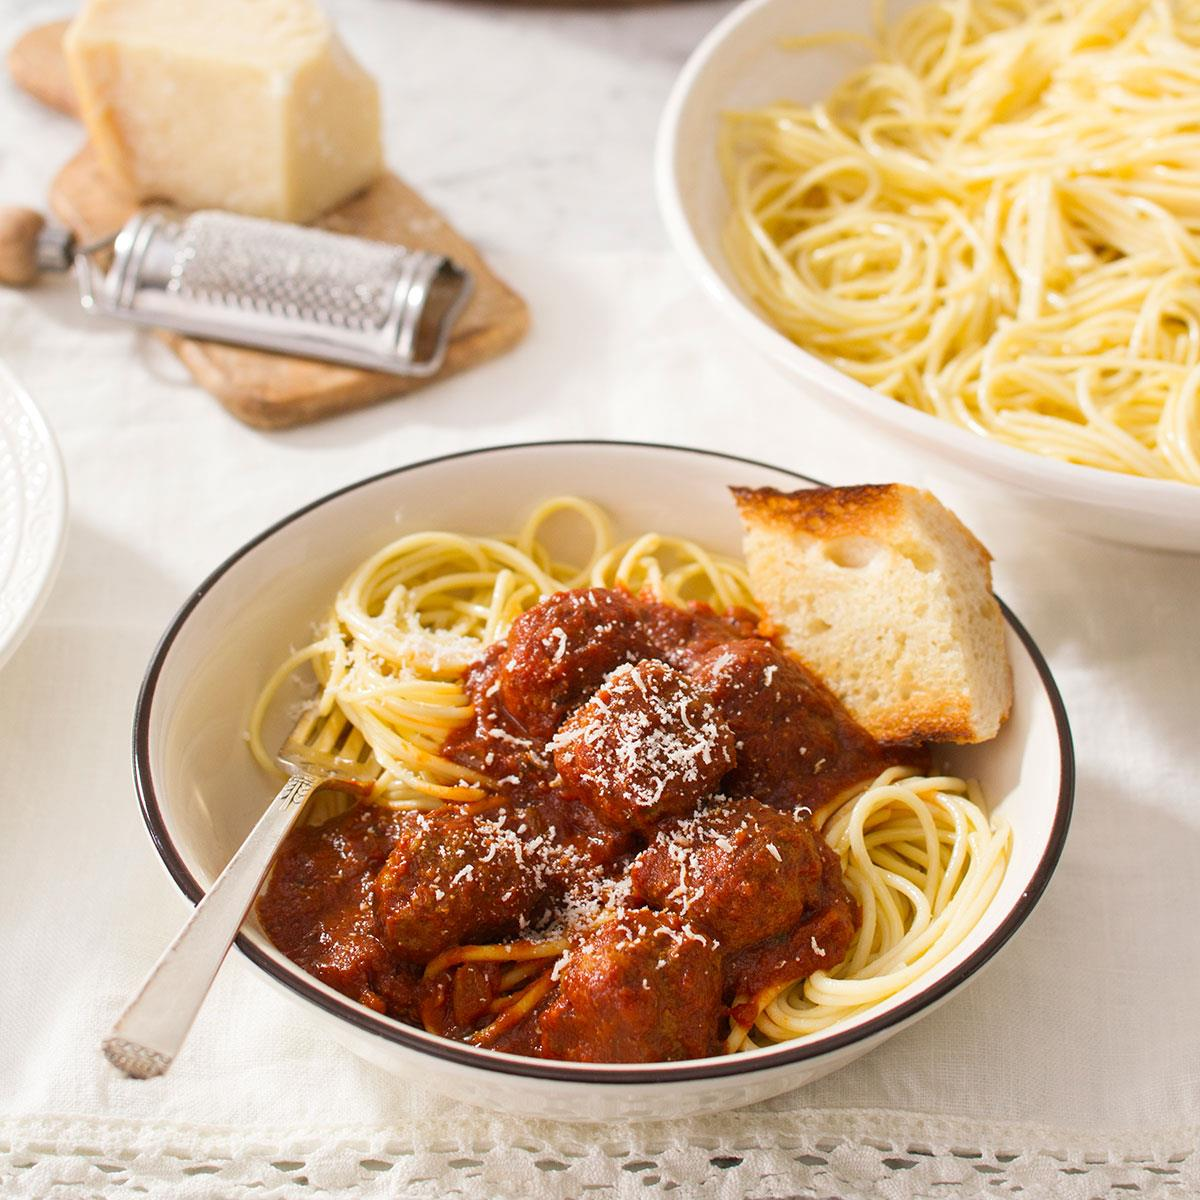 Best Spaghetti And Meatballs Recipe How To Make It Taste Of Home